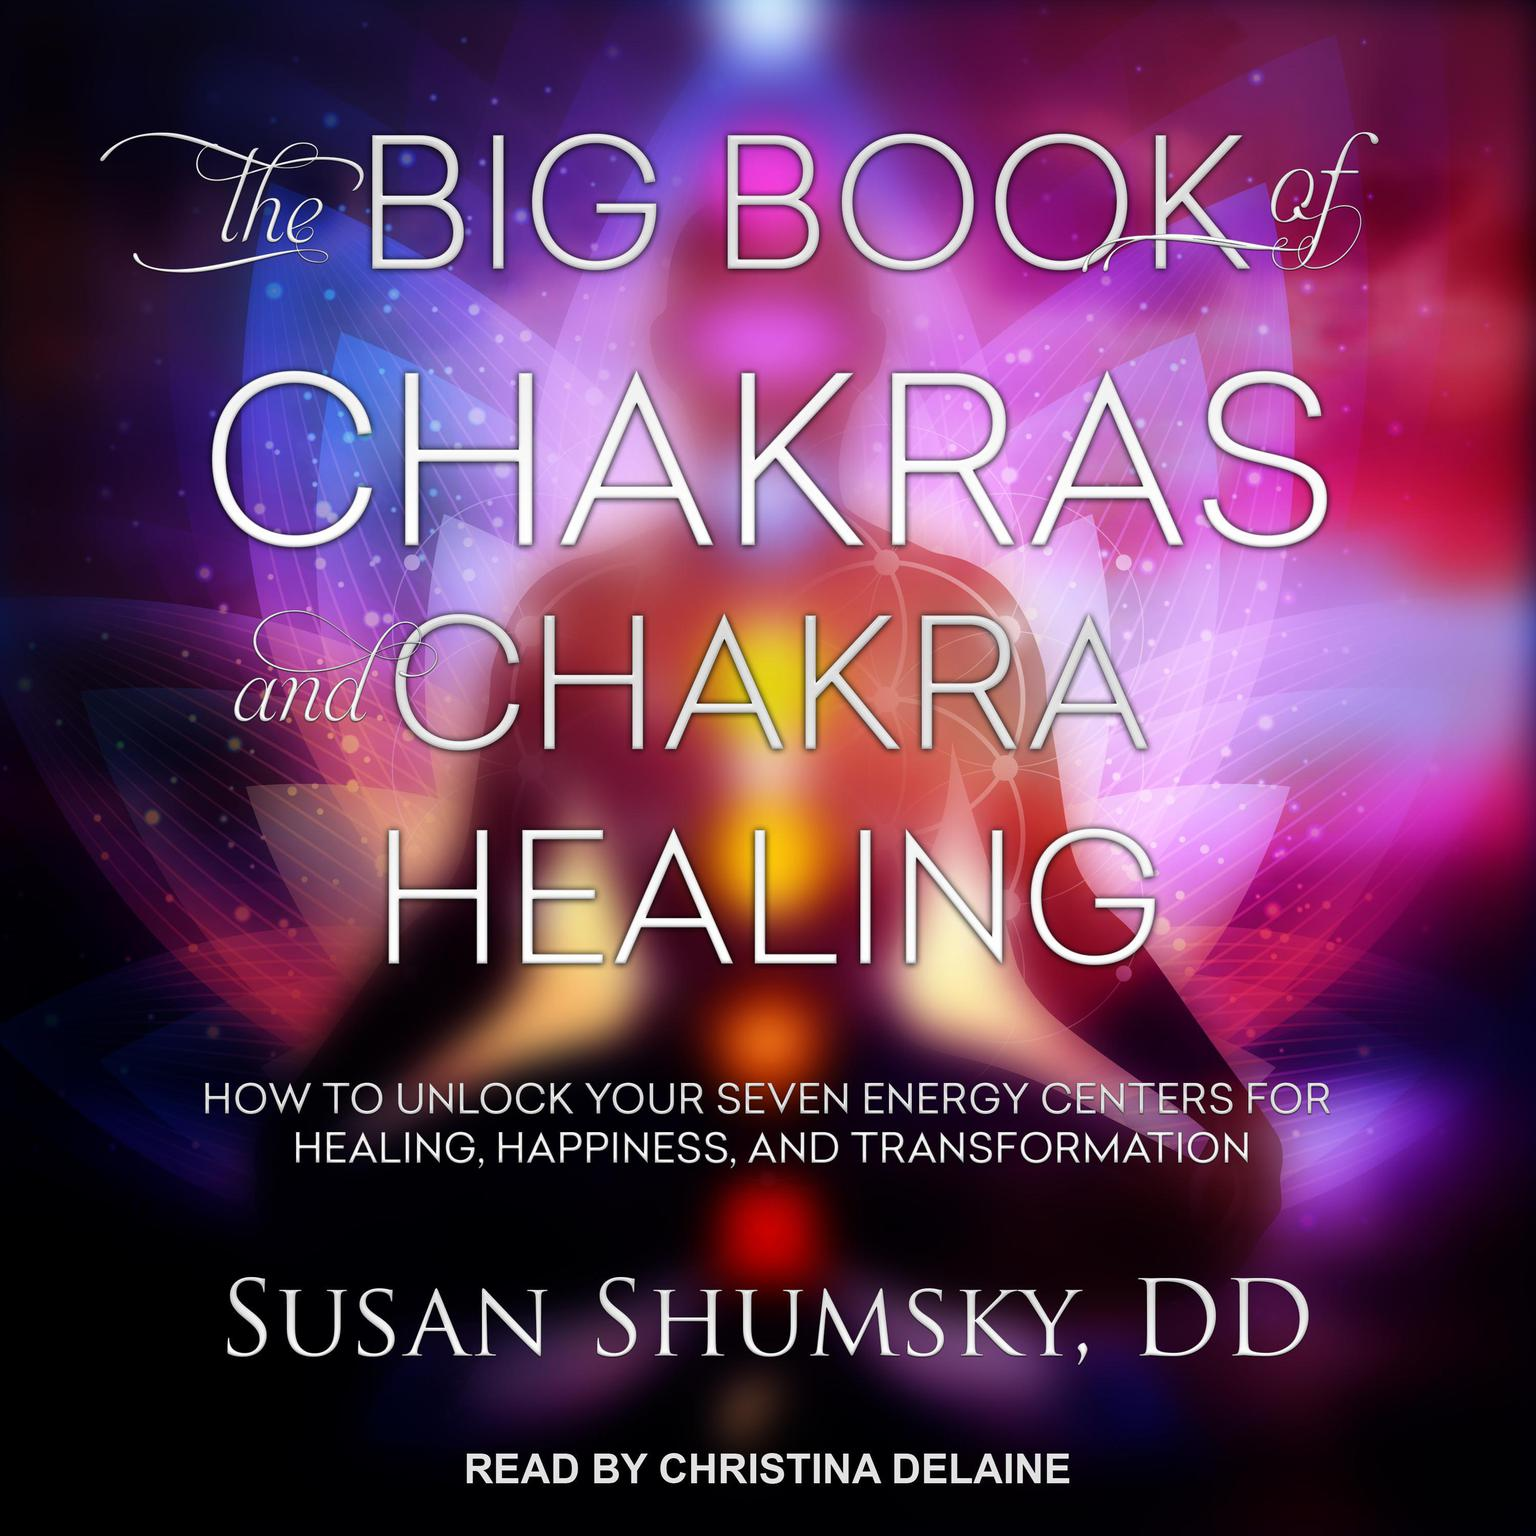 Printable The Big Book of Chakras and Chakra Healing: How to Unlock Your Seven Energy Centers for Healing, Happiness, and Transformation Audiobook Cover Art